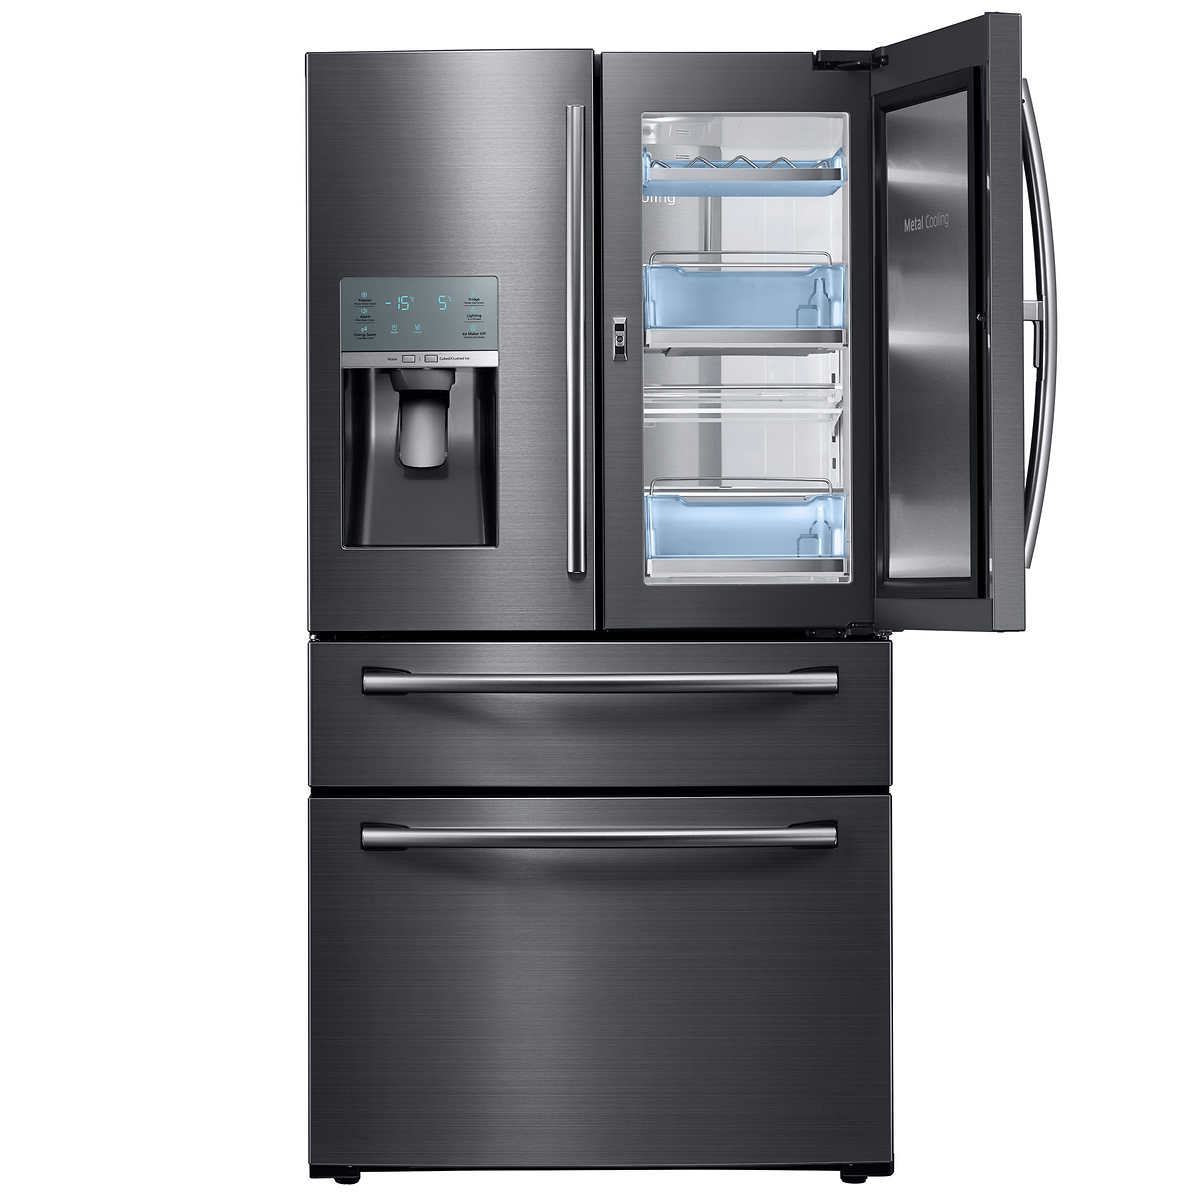 Whirlpool white ice costco canada - Samsung 22 0 Cu Ft Black Stainless Steel 36 In Counter Depth 4 Door